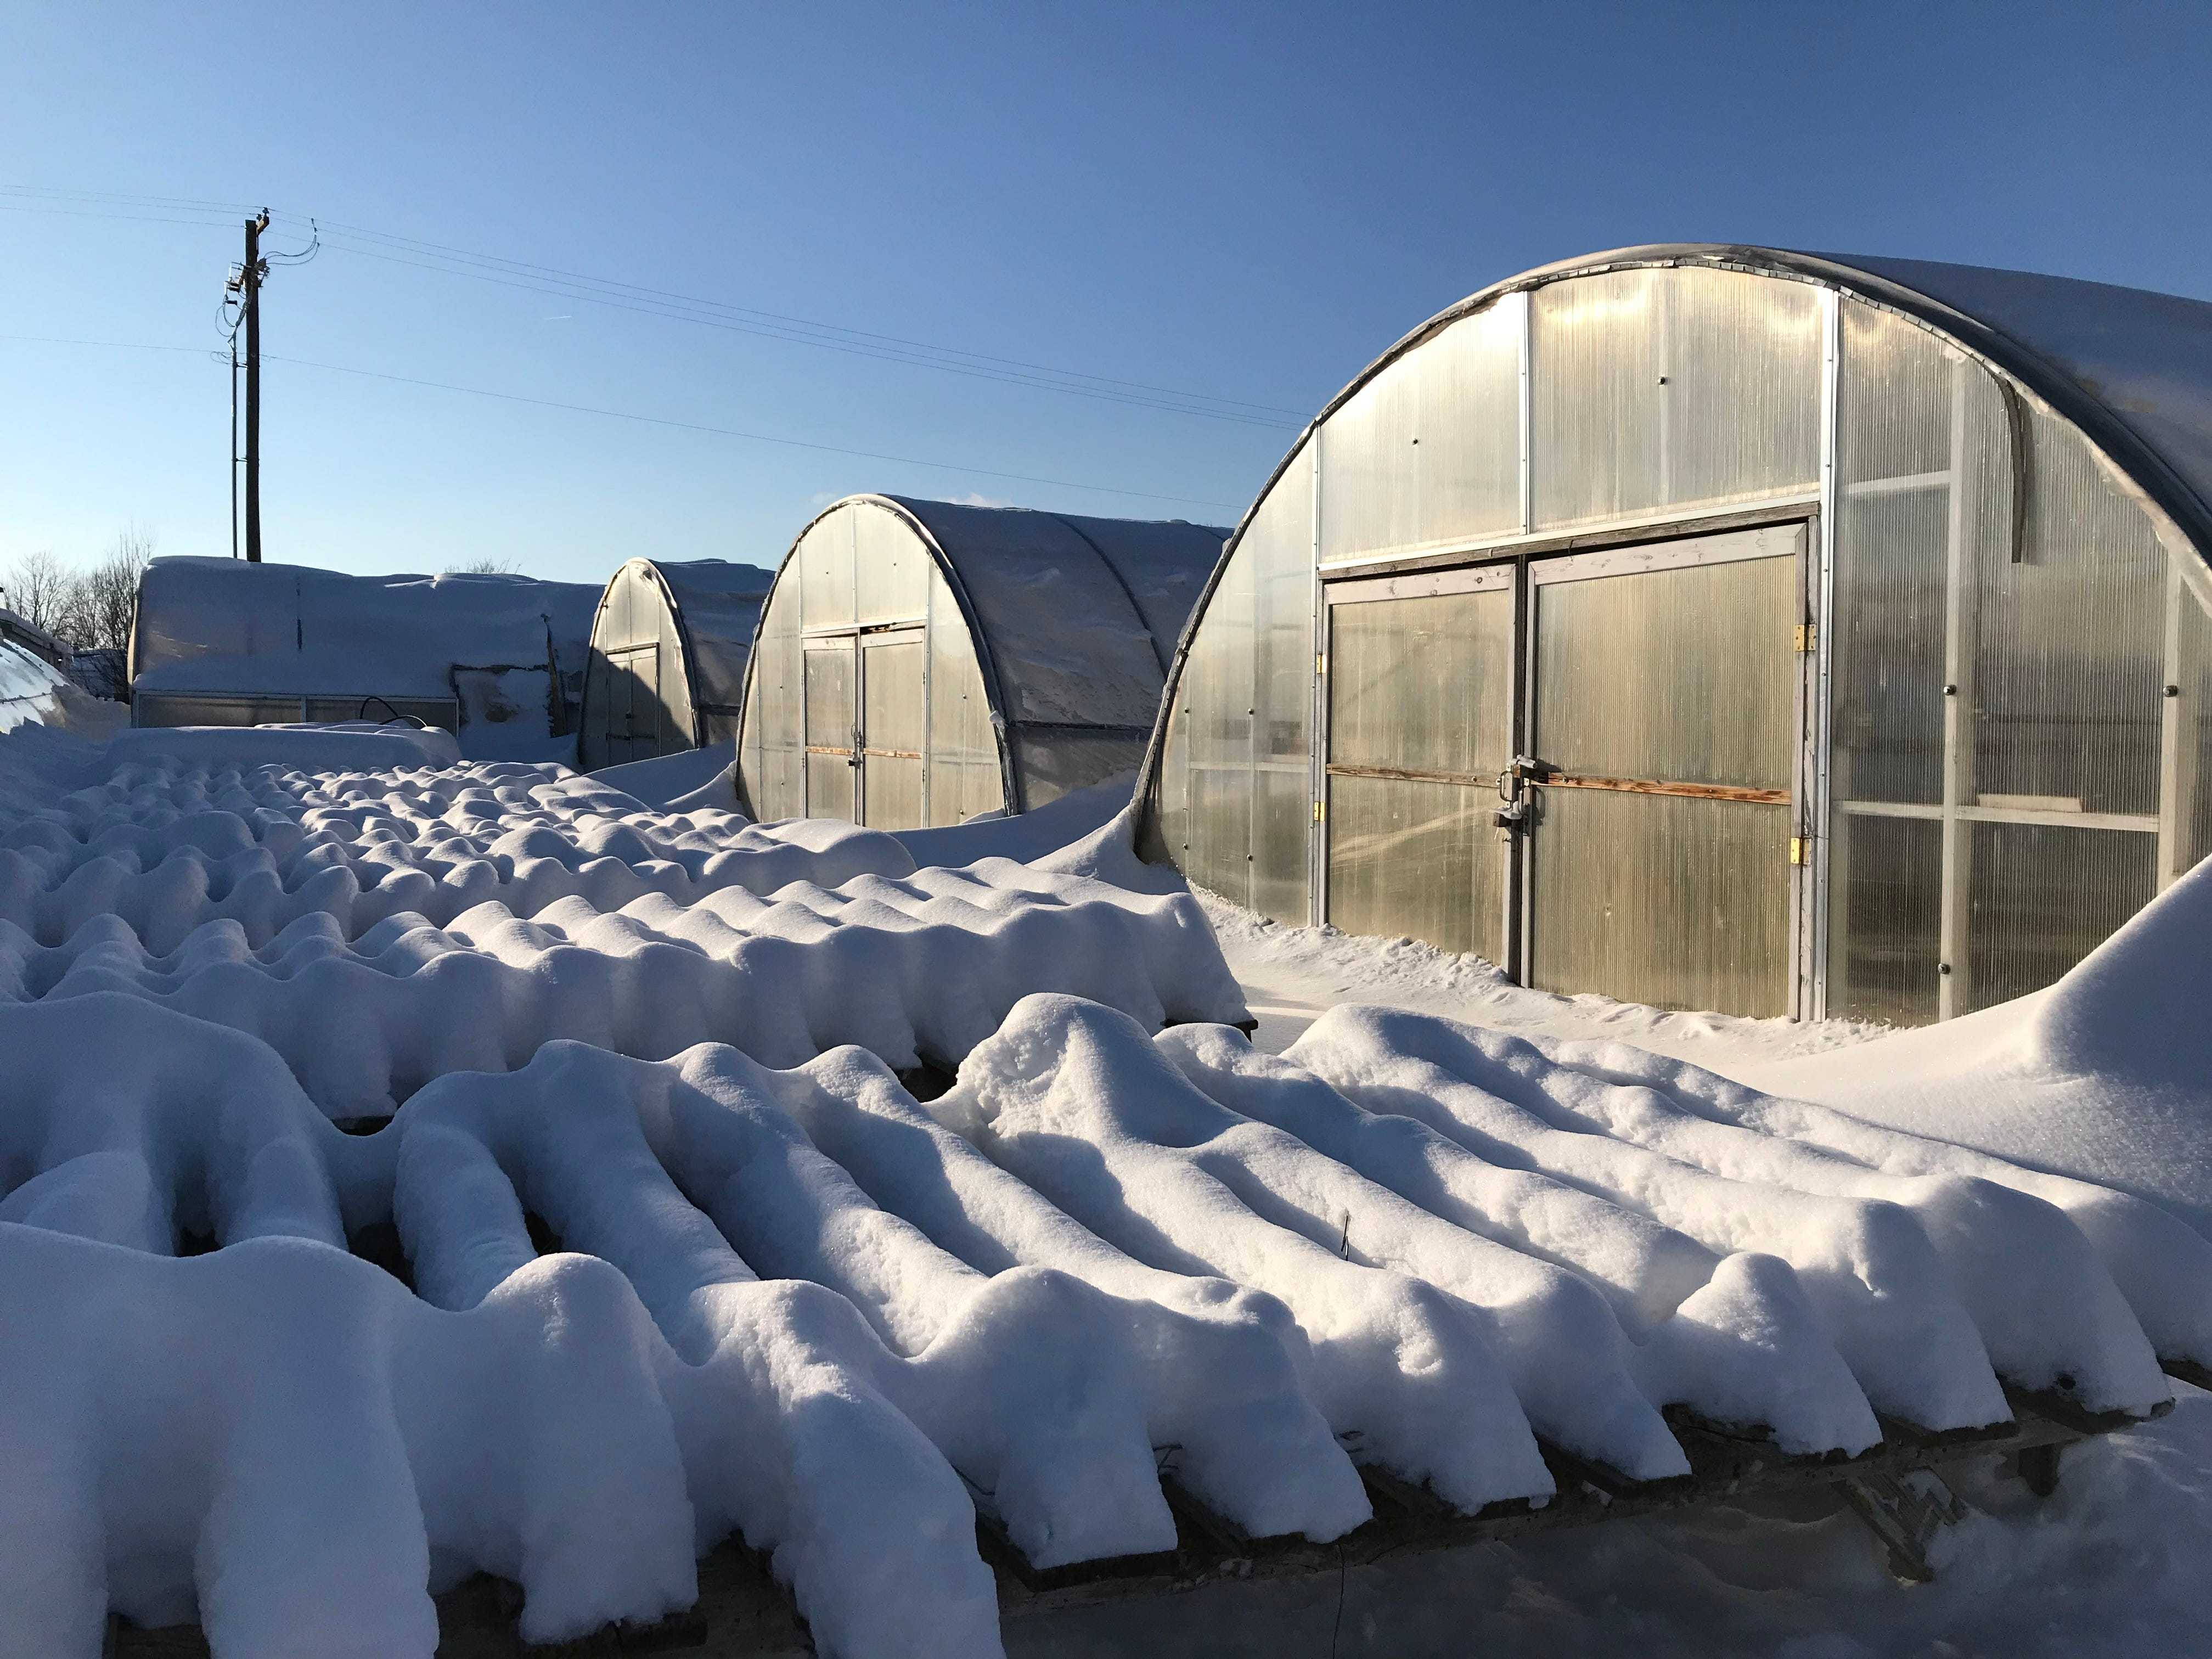 Bundi Gardens in Great falls has 11 greenhouses with four in use now. A greenhouse that is empty right now collapsed under the weight of snow.